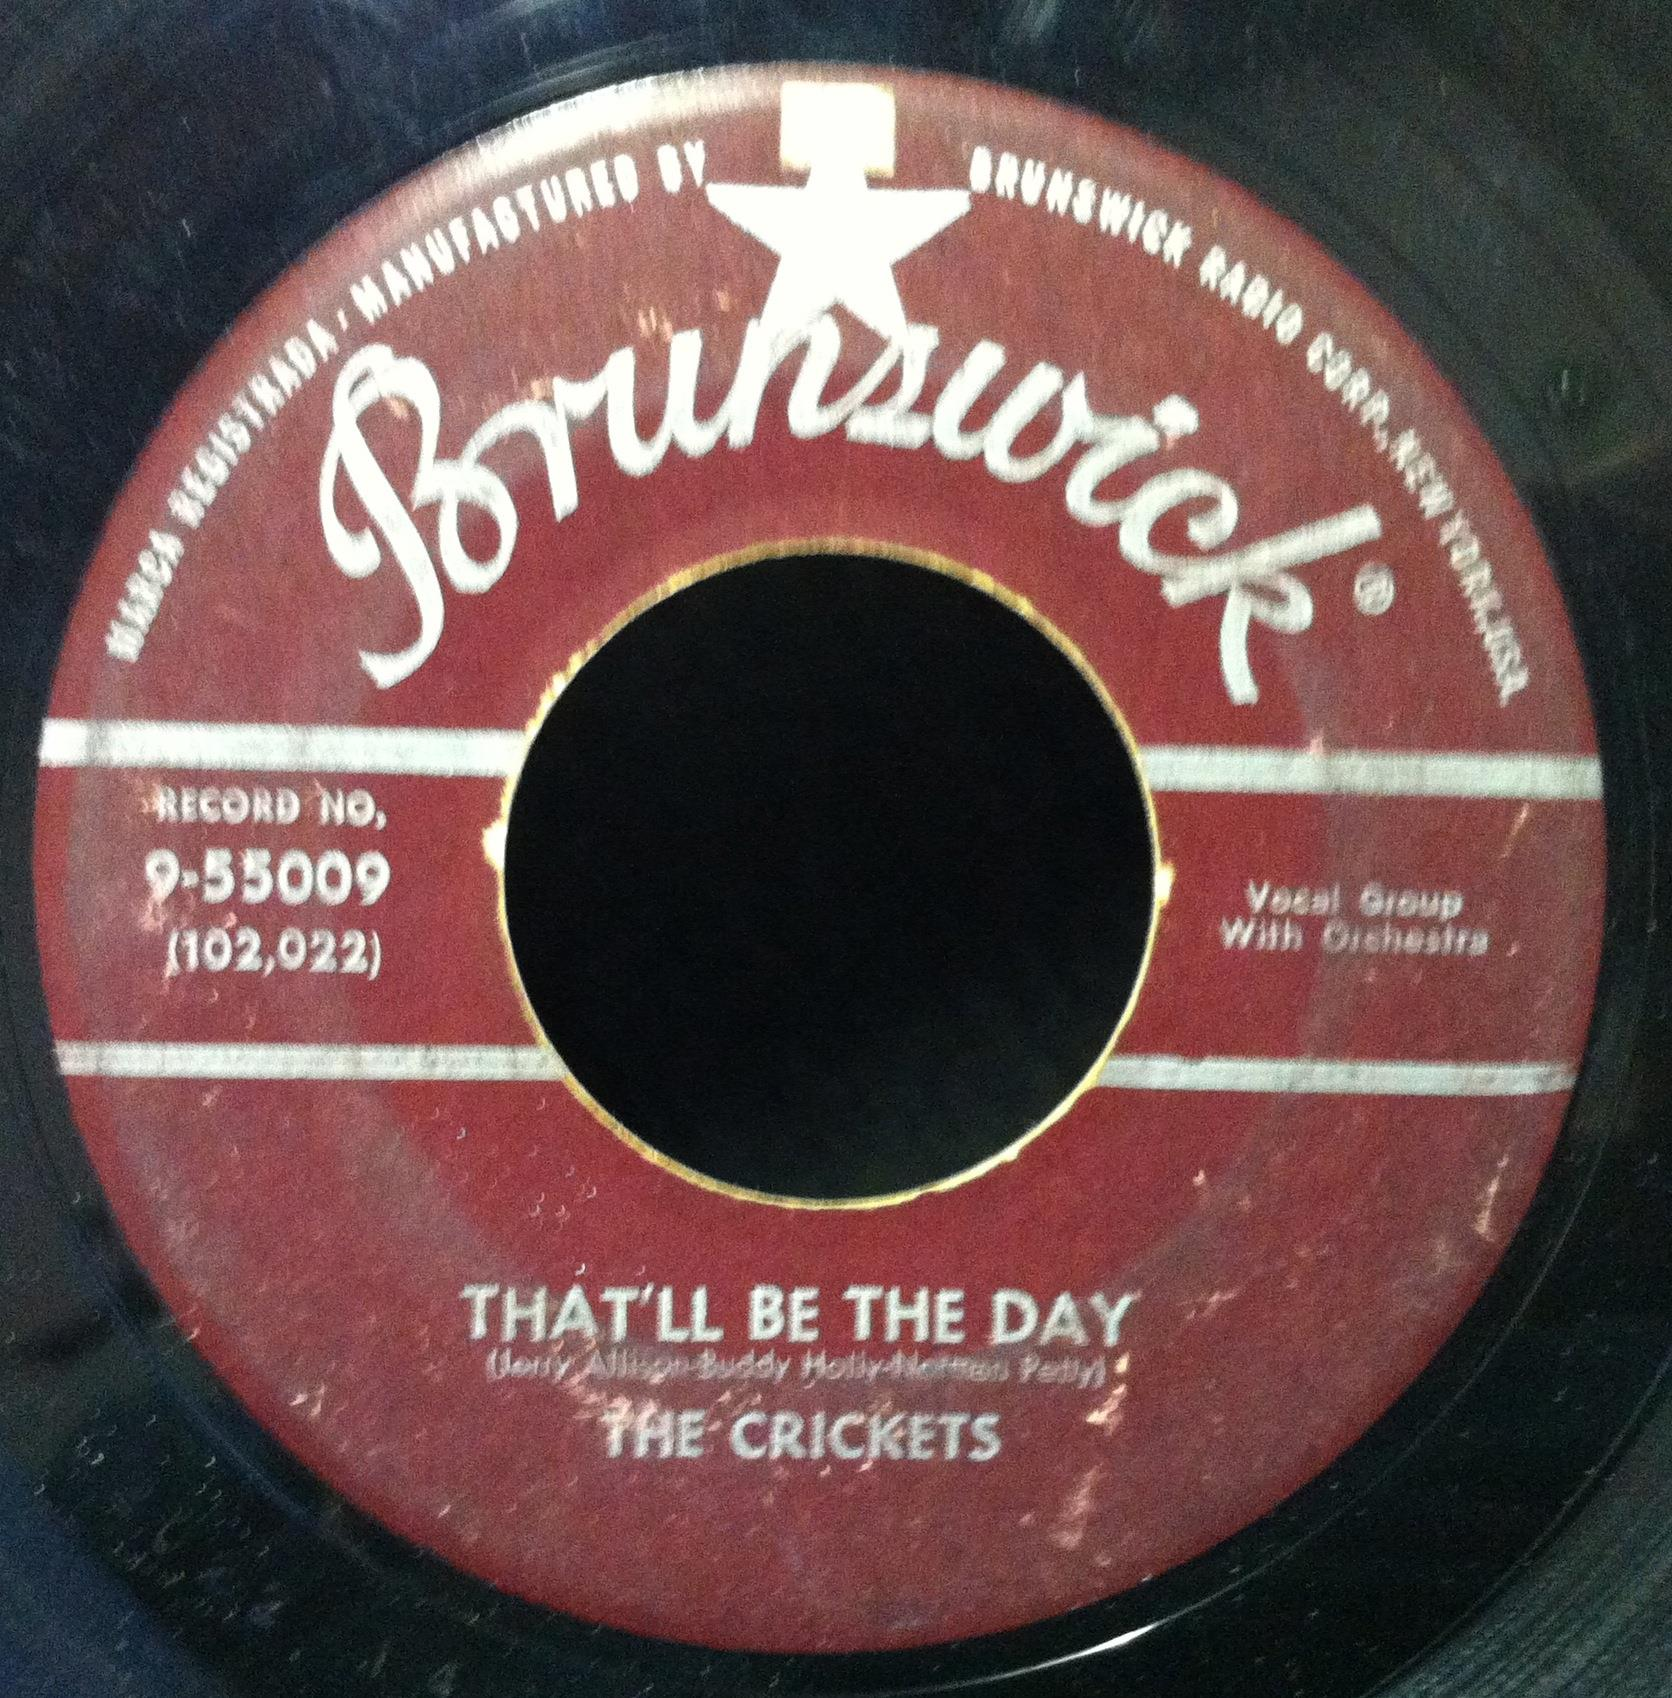 "BUDDY HOLLY & THE CRICKETS - Buddy Holly & Crickets I'm Lookin For Someone To Love / That'll Be The Day 7"" Vg (i'm Looki"